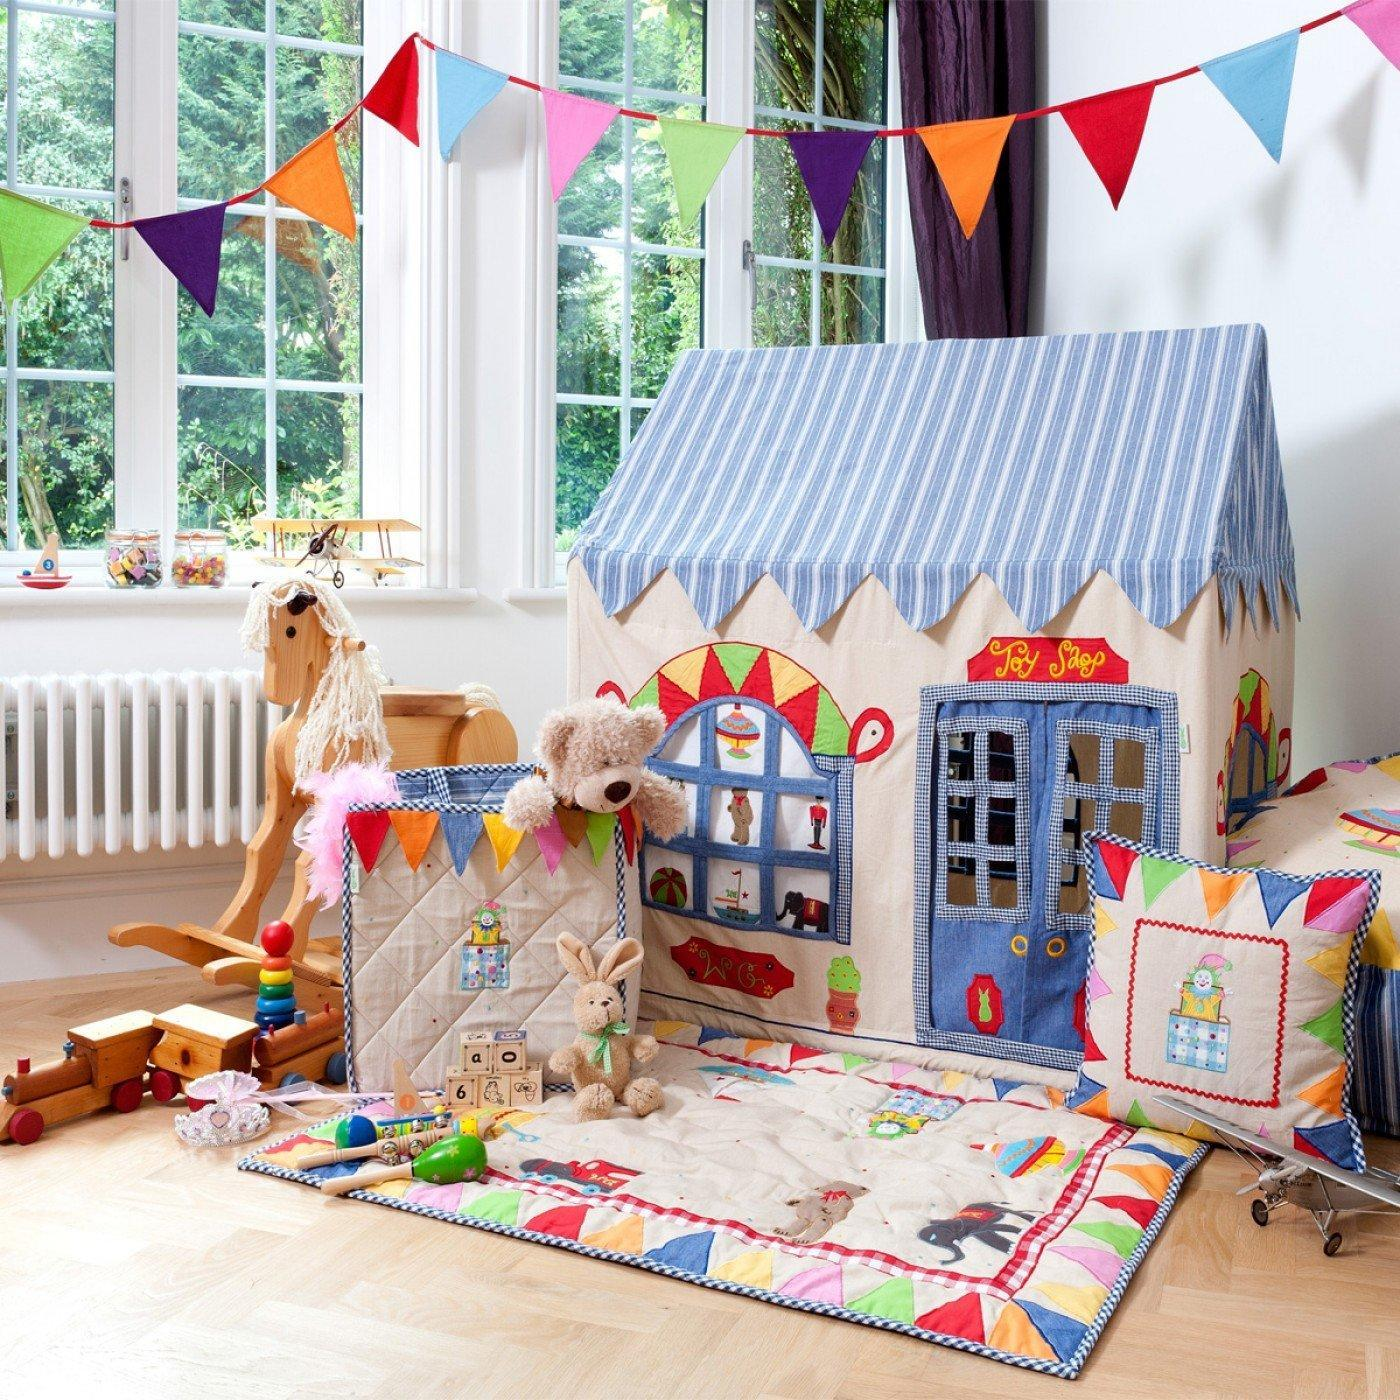 Play tents available at Alice Frederick www.alicefrederick.co.uk